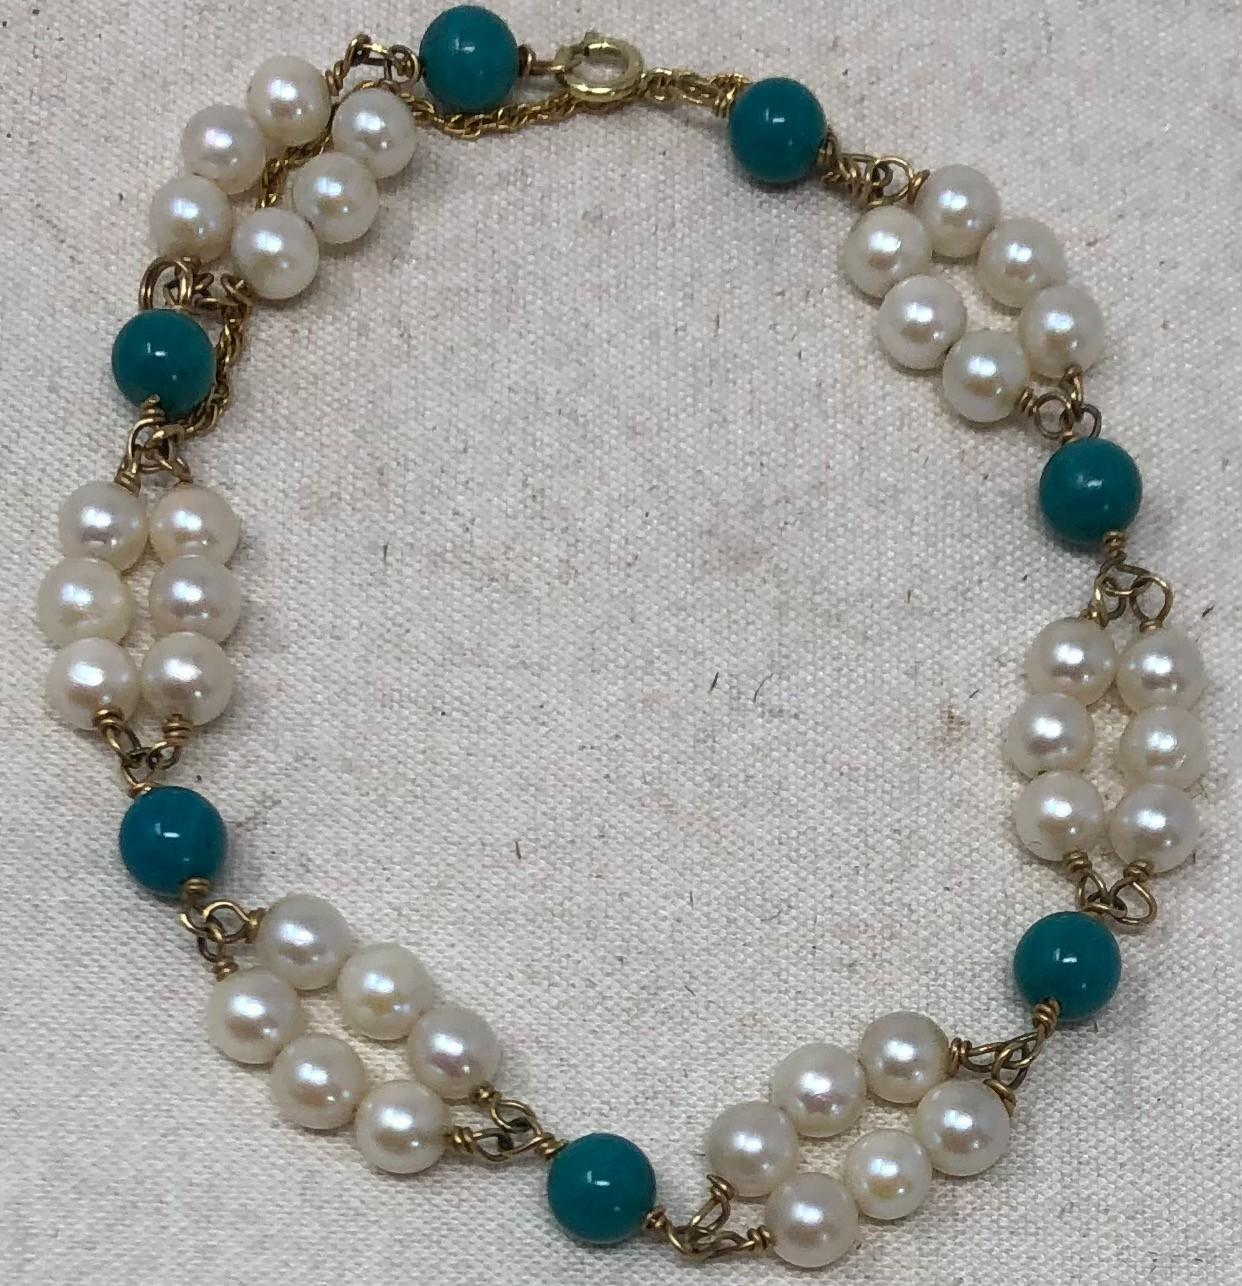 Pearl, turquoise and 14k gold bracelet with six separate sections comprising double rows of three pearls attached with 14k wire wraps, alternating with turquoise bead and 14k gold clasp.